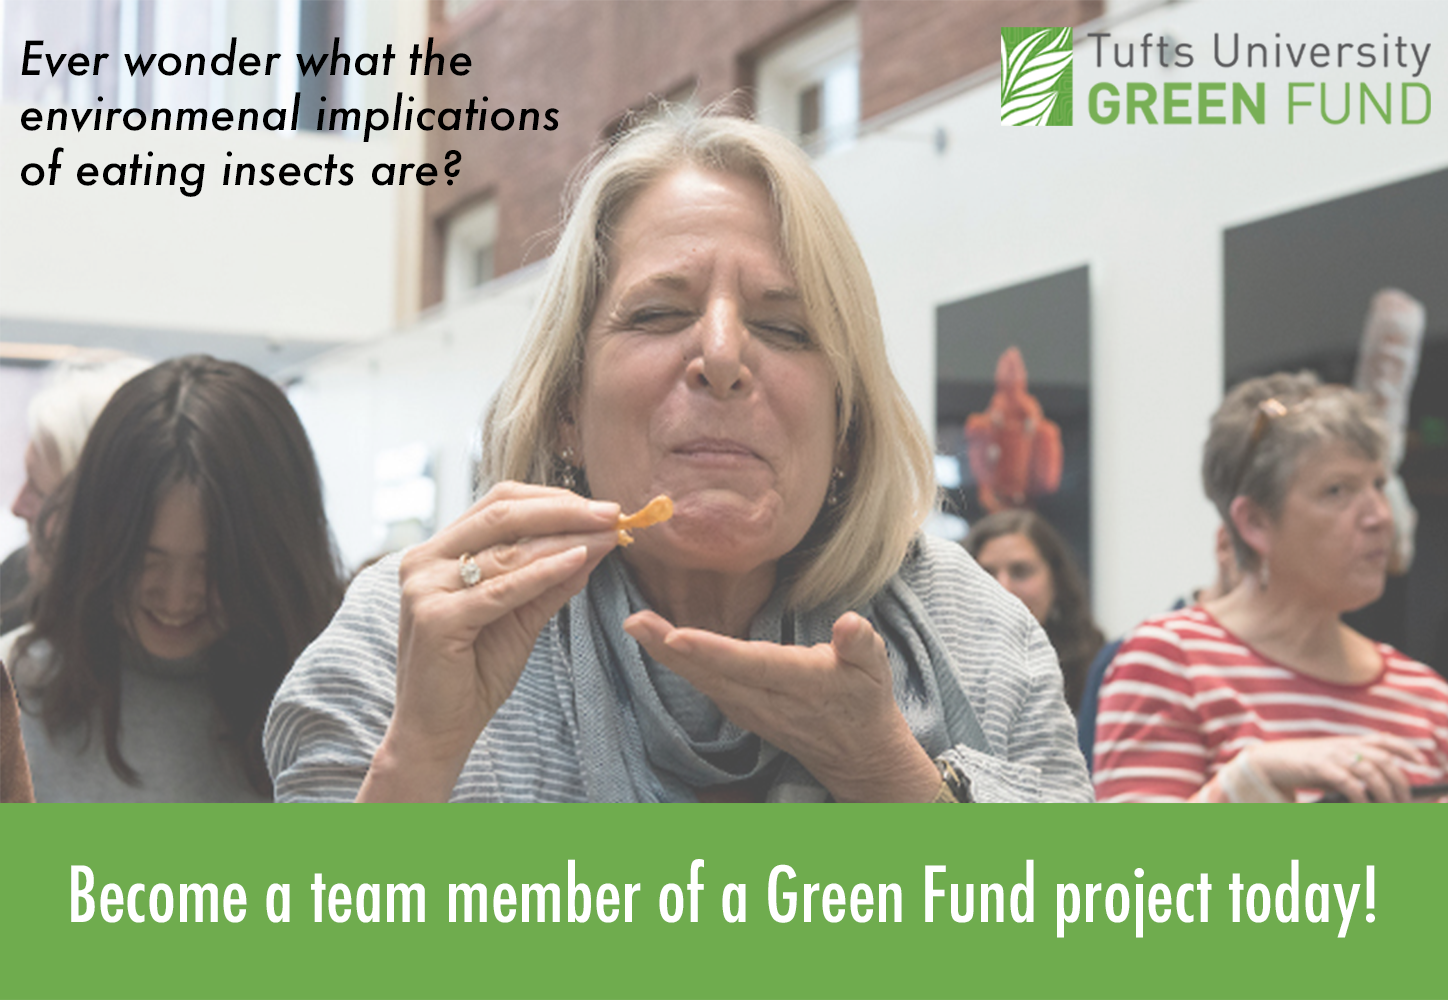 Join a Green Fund Project Team!